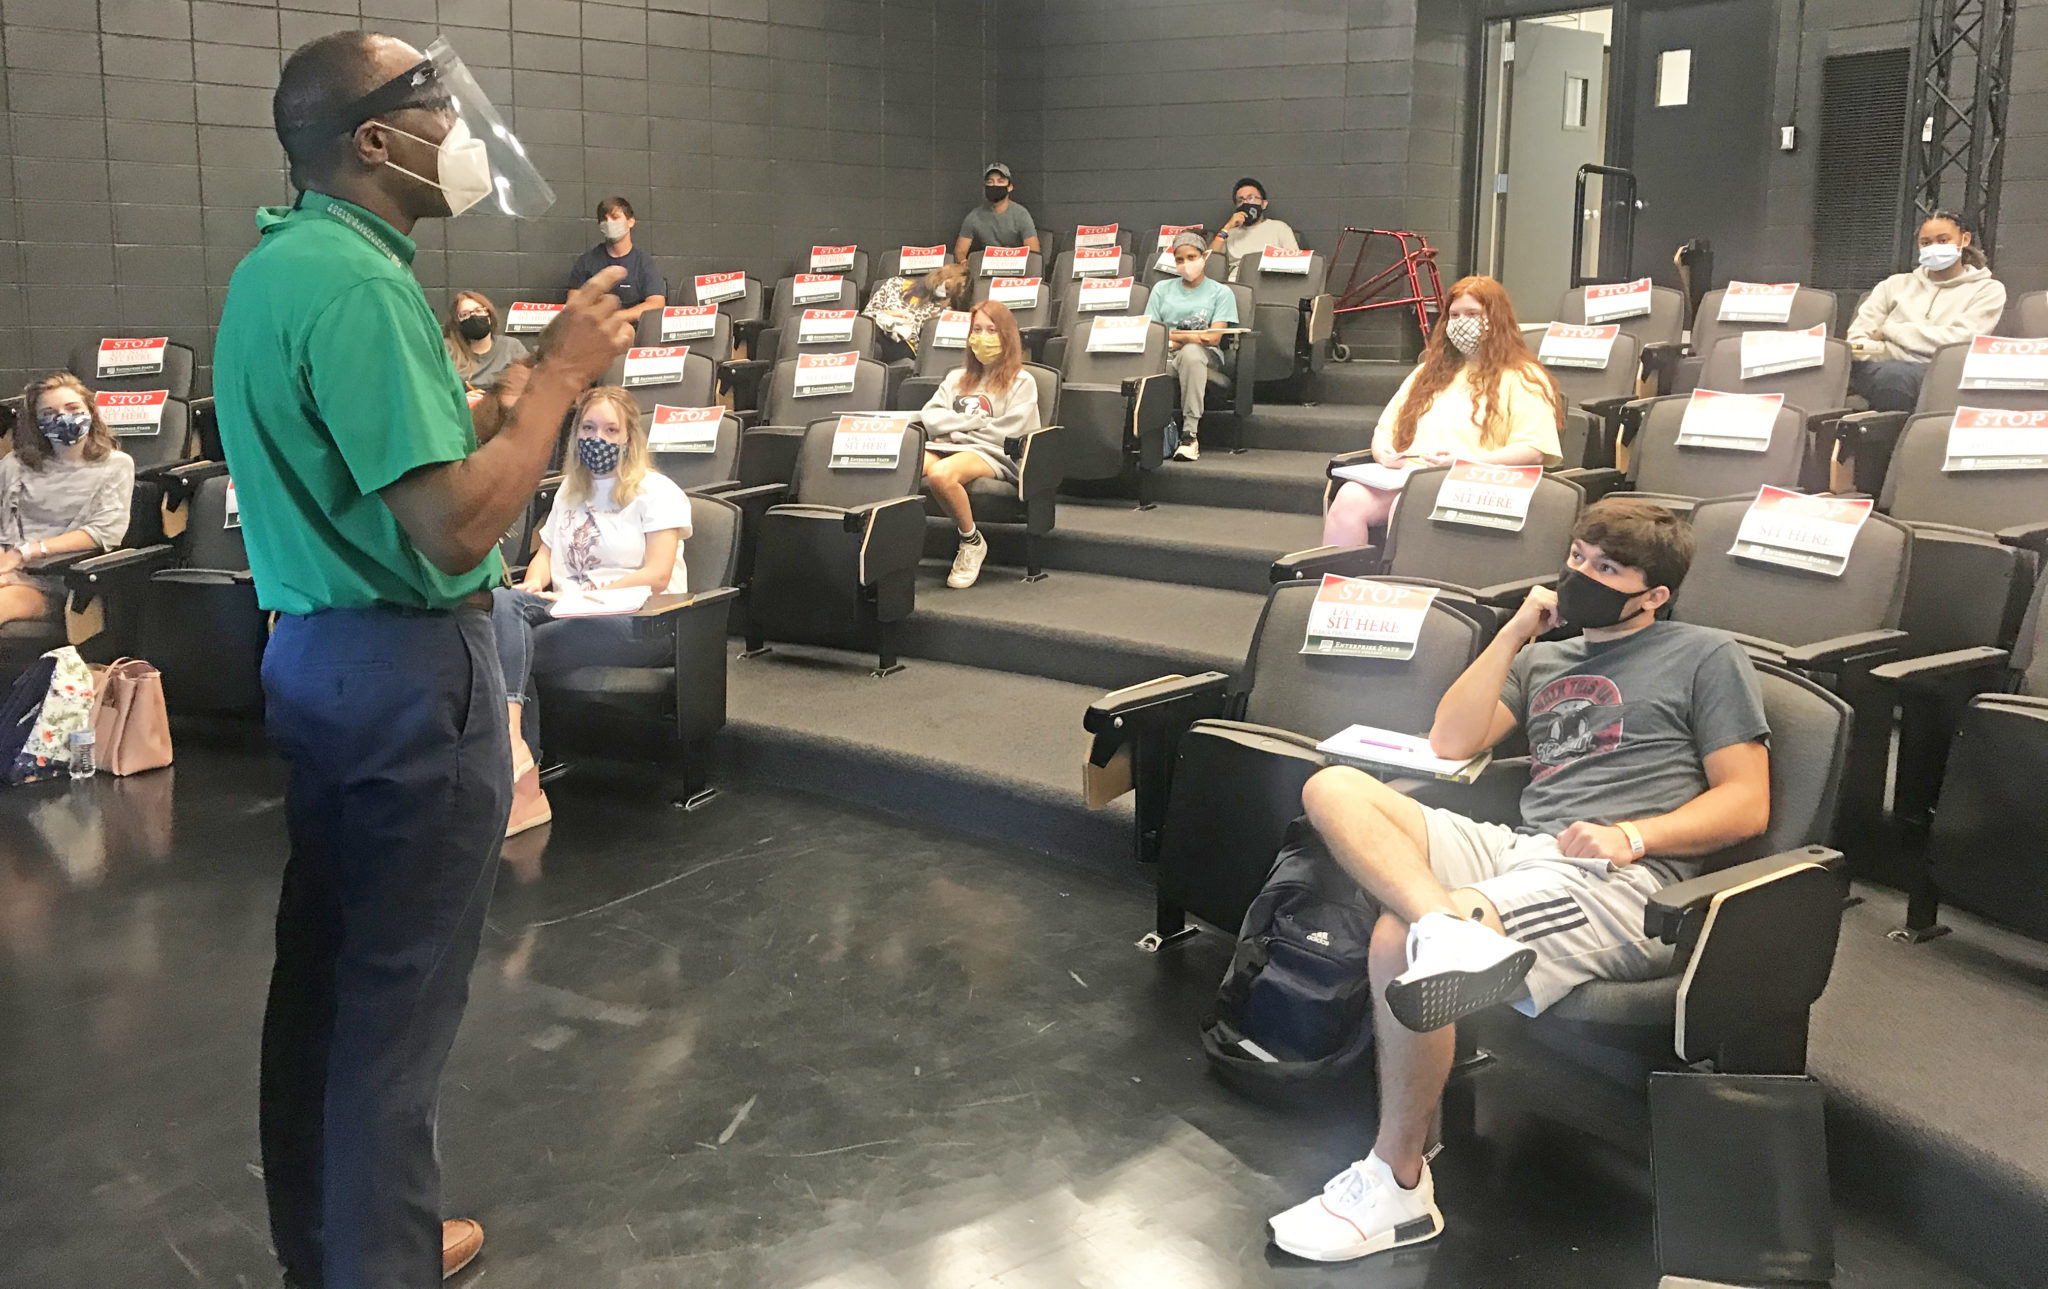 Students return to campus for class at ESCC